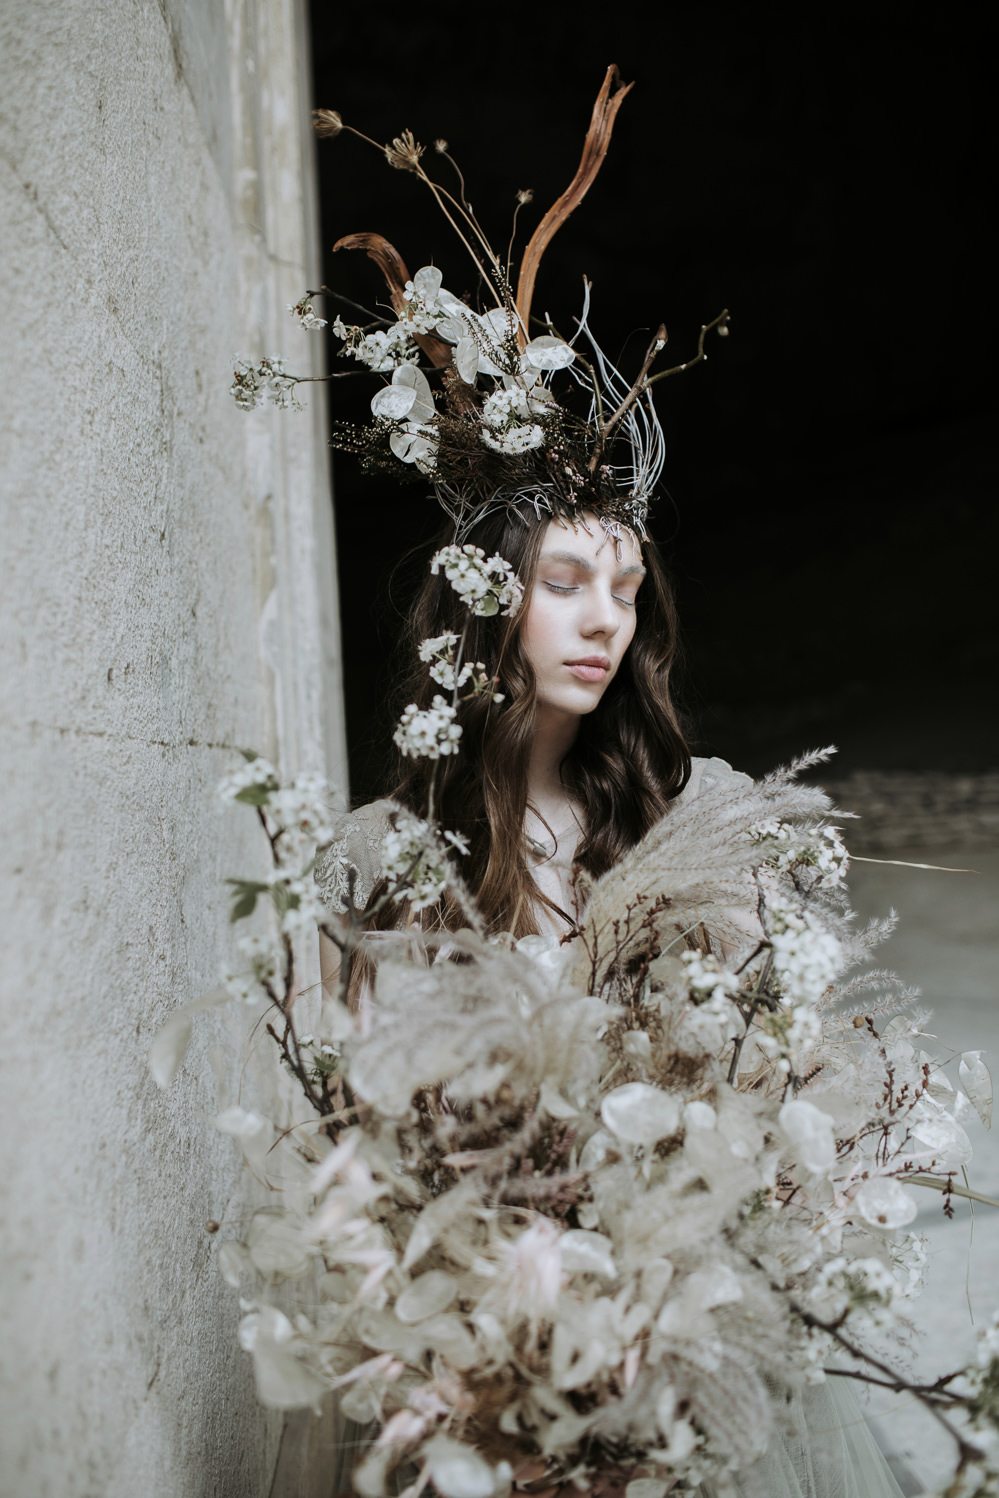 Bouquet Flowers Bride Bridal Feather Grasses Twigs Branches Flowers Wild Whimsical Natural Dried Seed Heads Cave Wedding Ideas Vanessa Illi Photographer